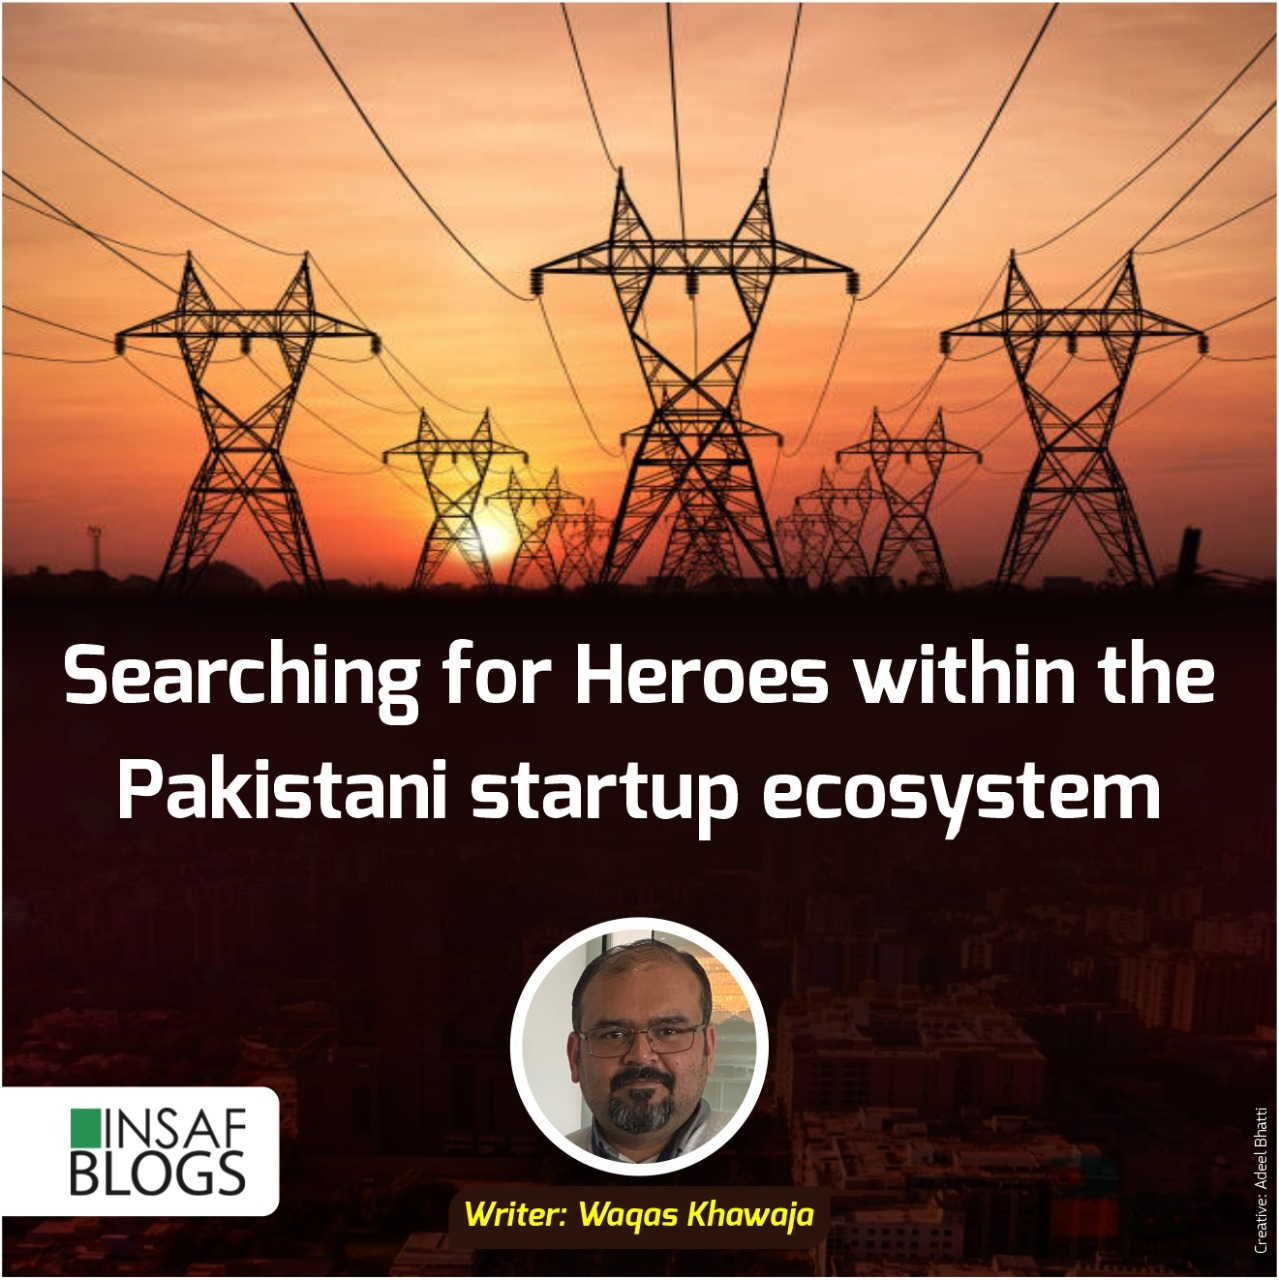 Searching for heroes within Pakistani Startup Ecosystem